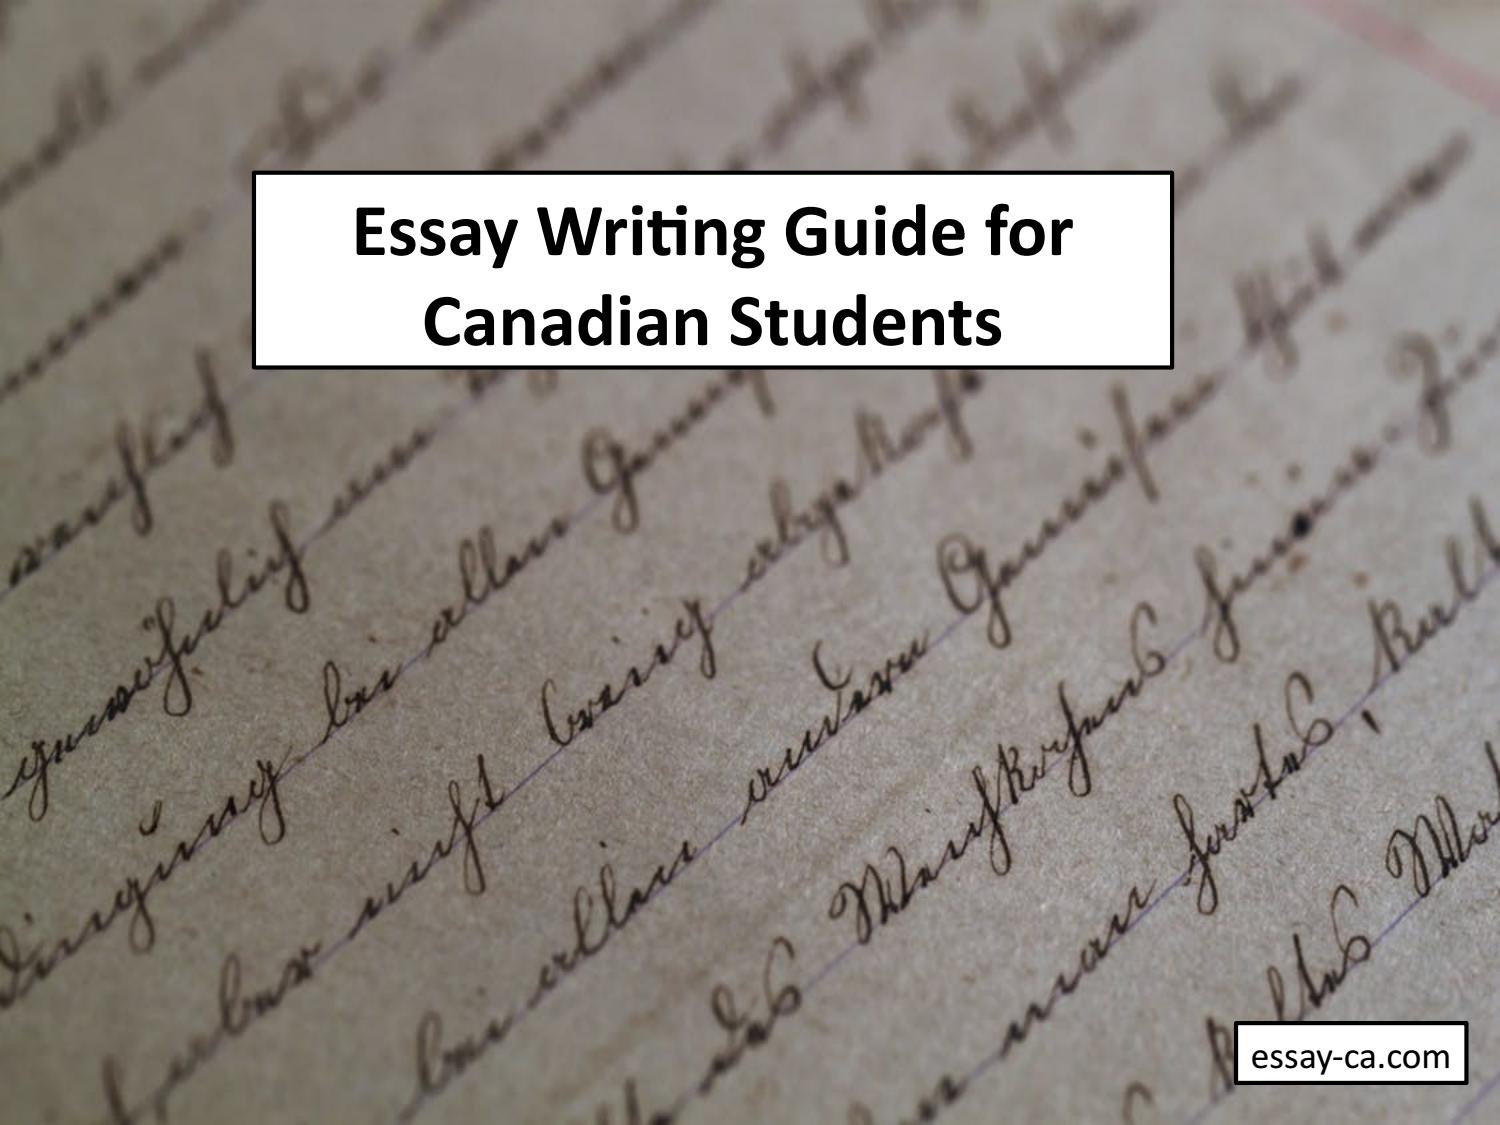 essays on canadian writing 69 Professional custom writing service offers custom essays, term papers, research papers, thesis papers, reports, reviews and dissertations, plagiarism free.